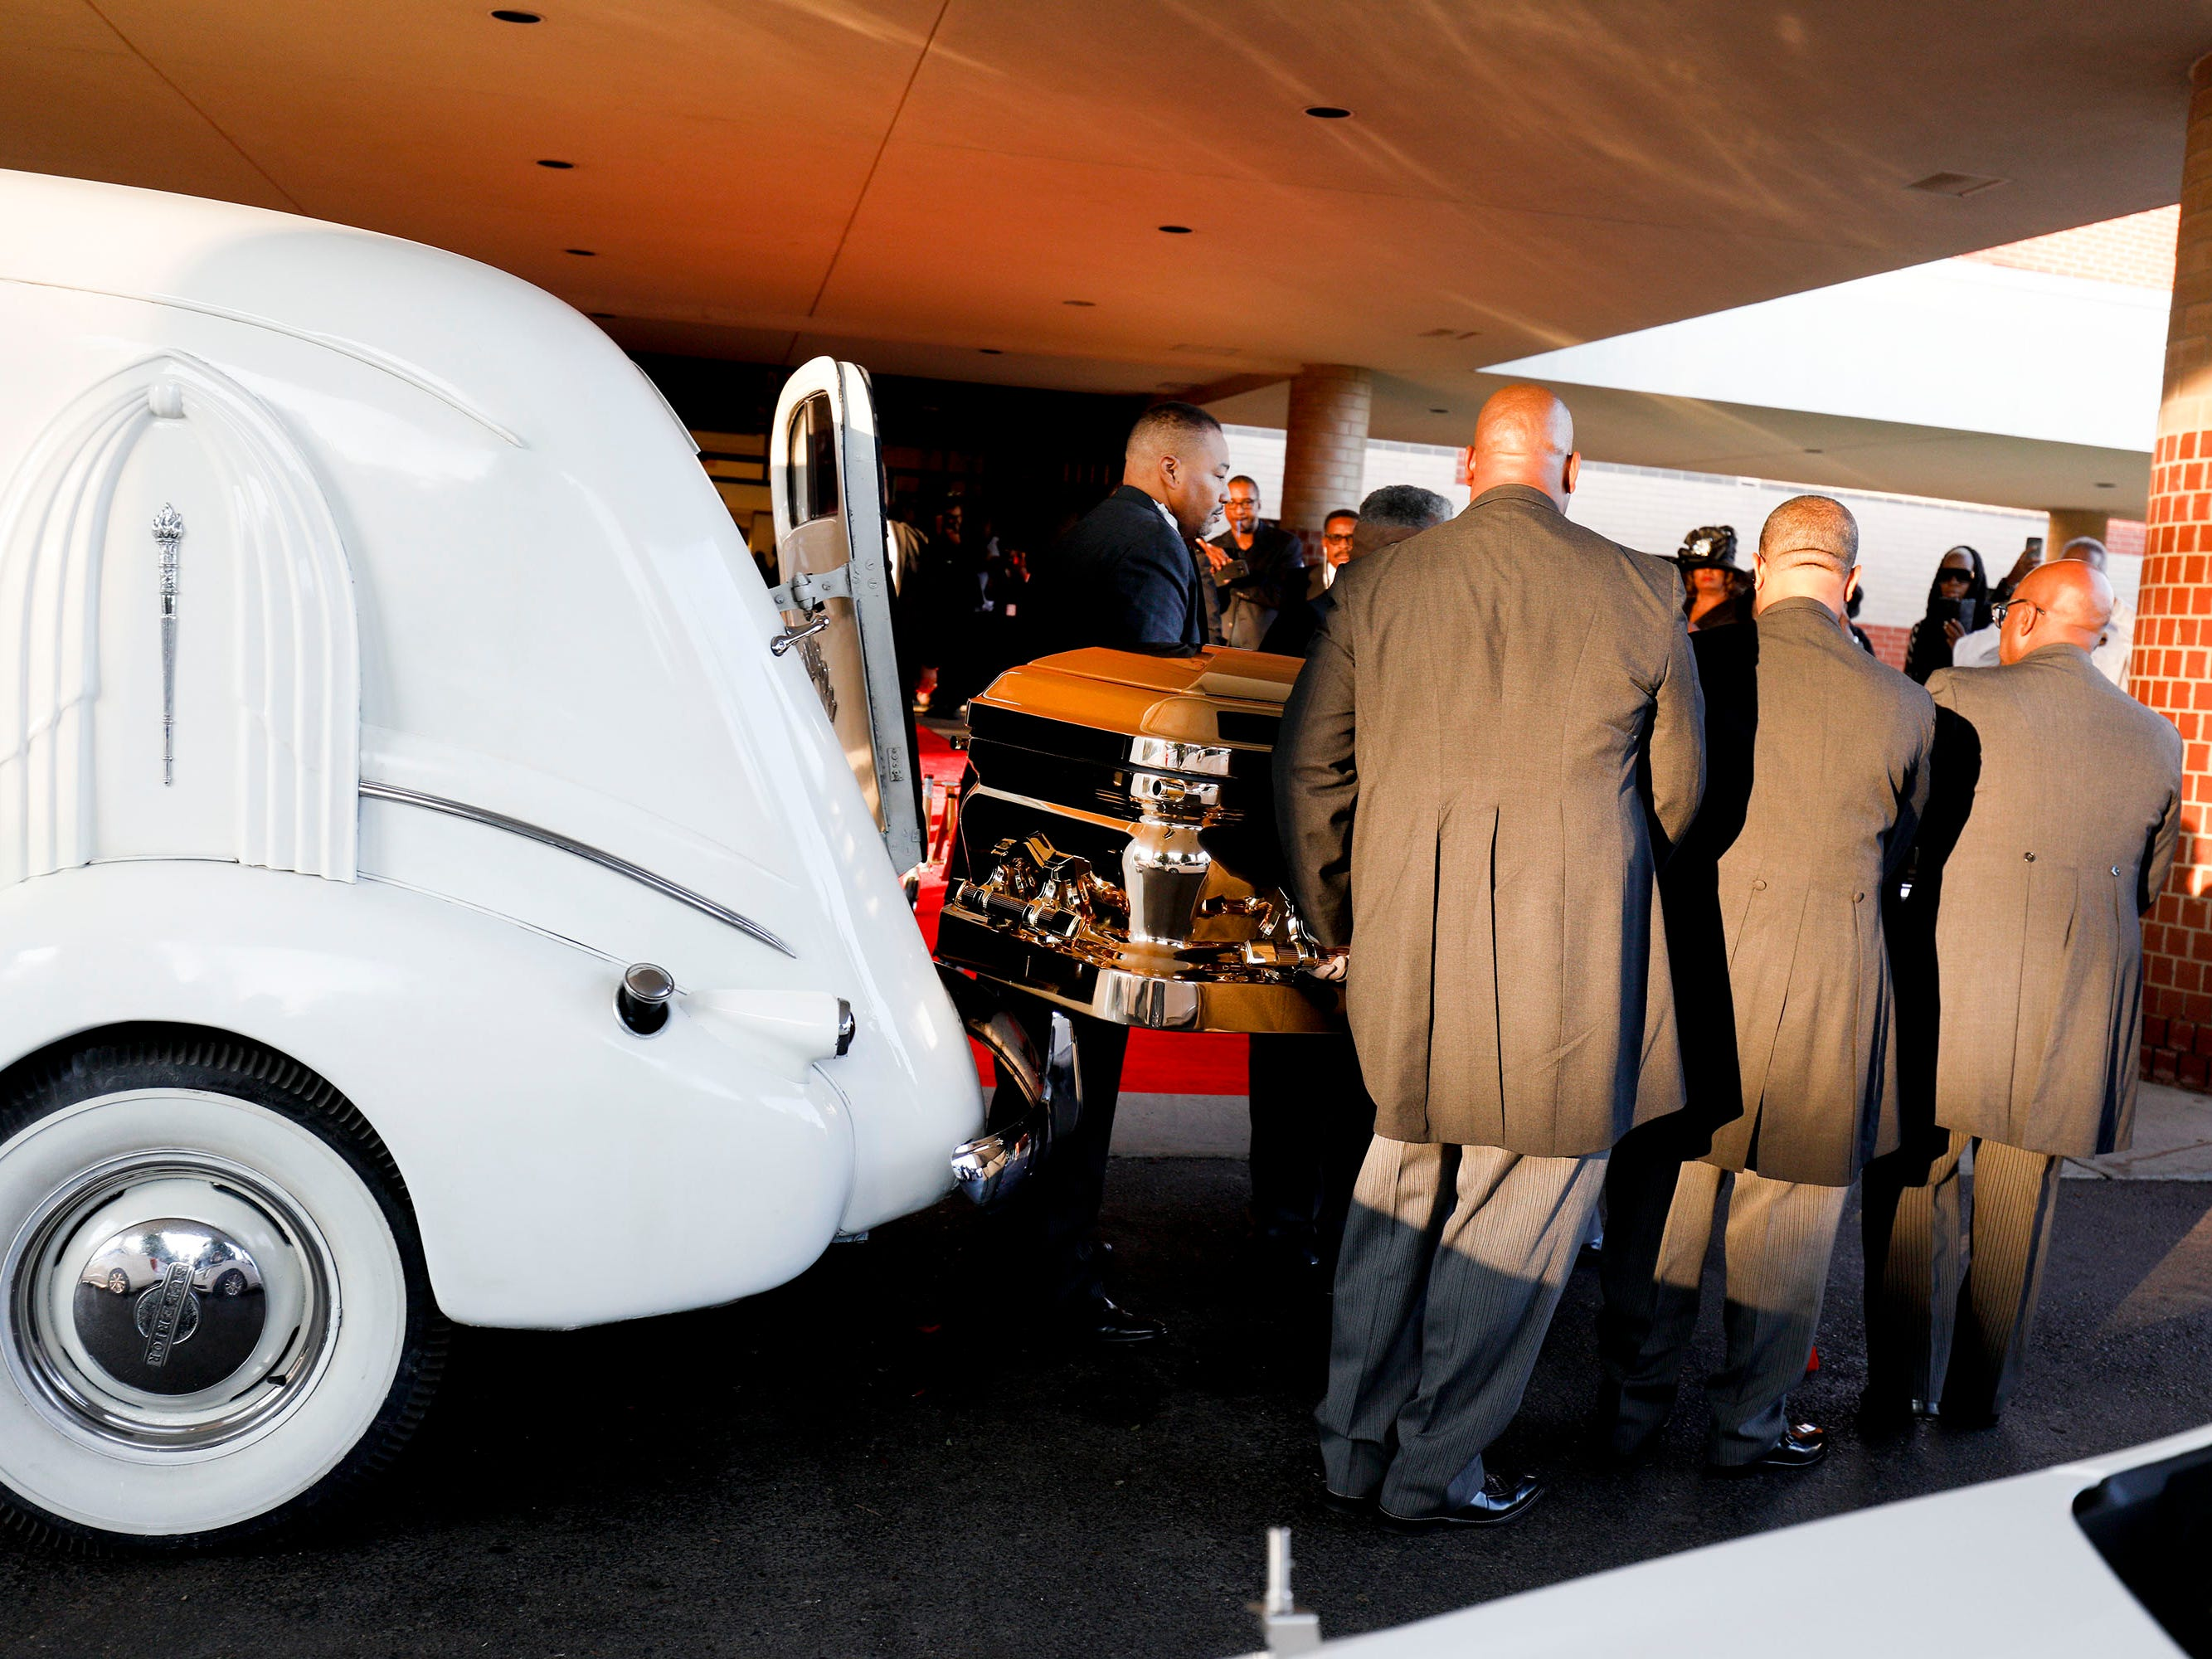 The casket containing the remains of soul music icon Aretha Franklin is carried into Greater Grace Temple for the singer's funeral.